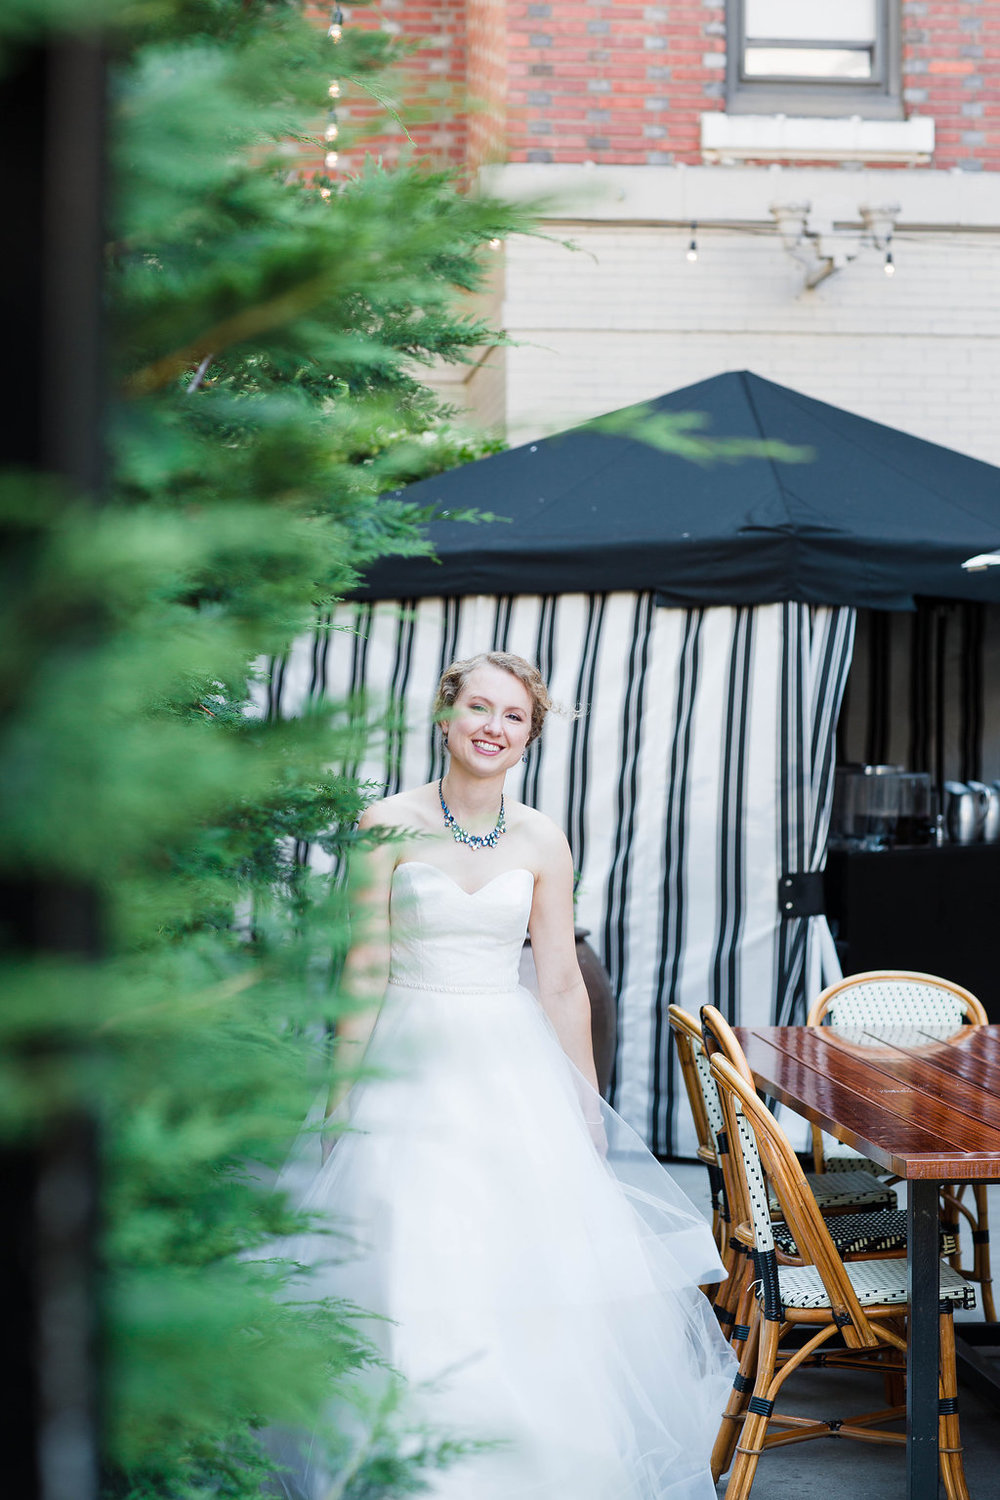 Nissa+Jesse_Wedding_Seattle_SoleRepairShop_6252015_302.jpg